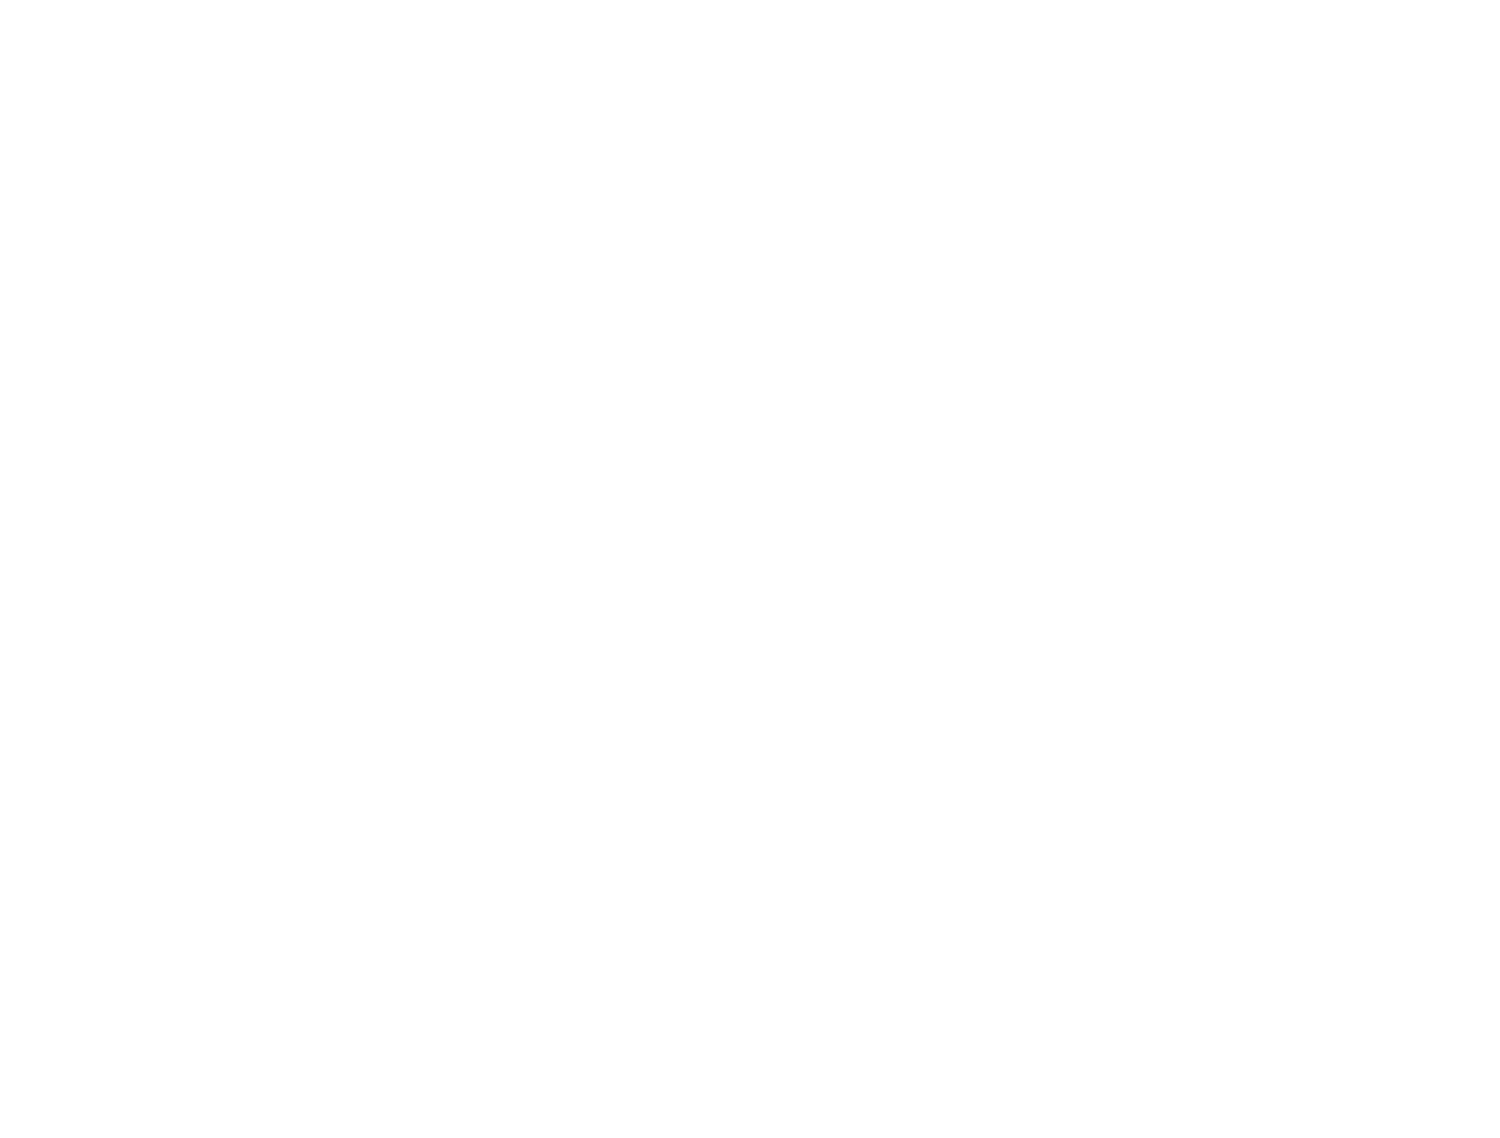 Sweet Habits Creations